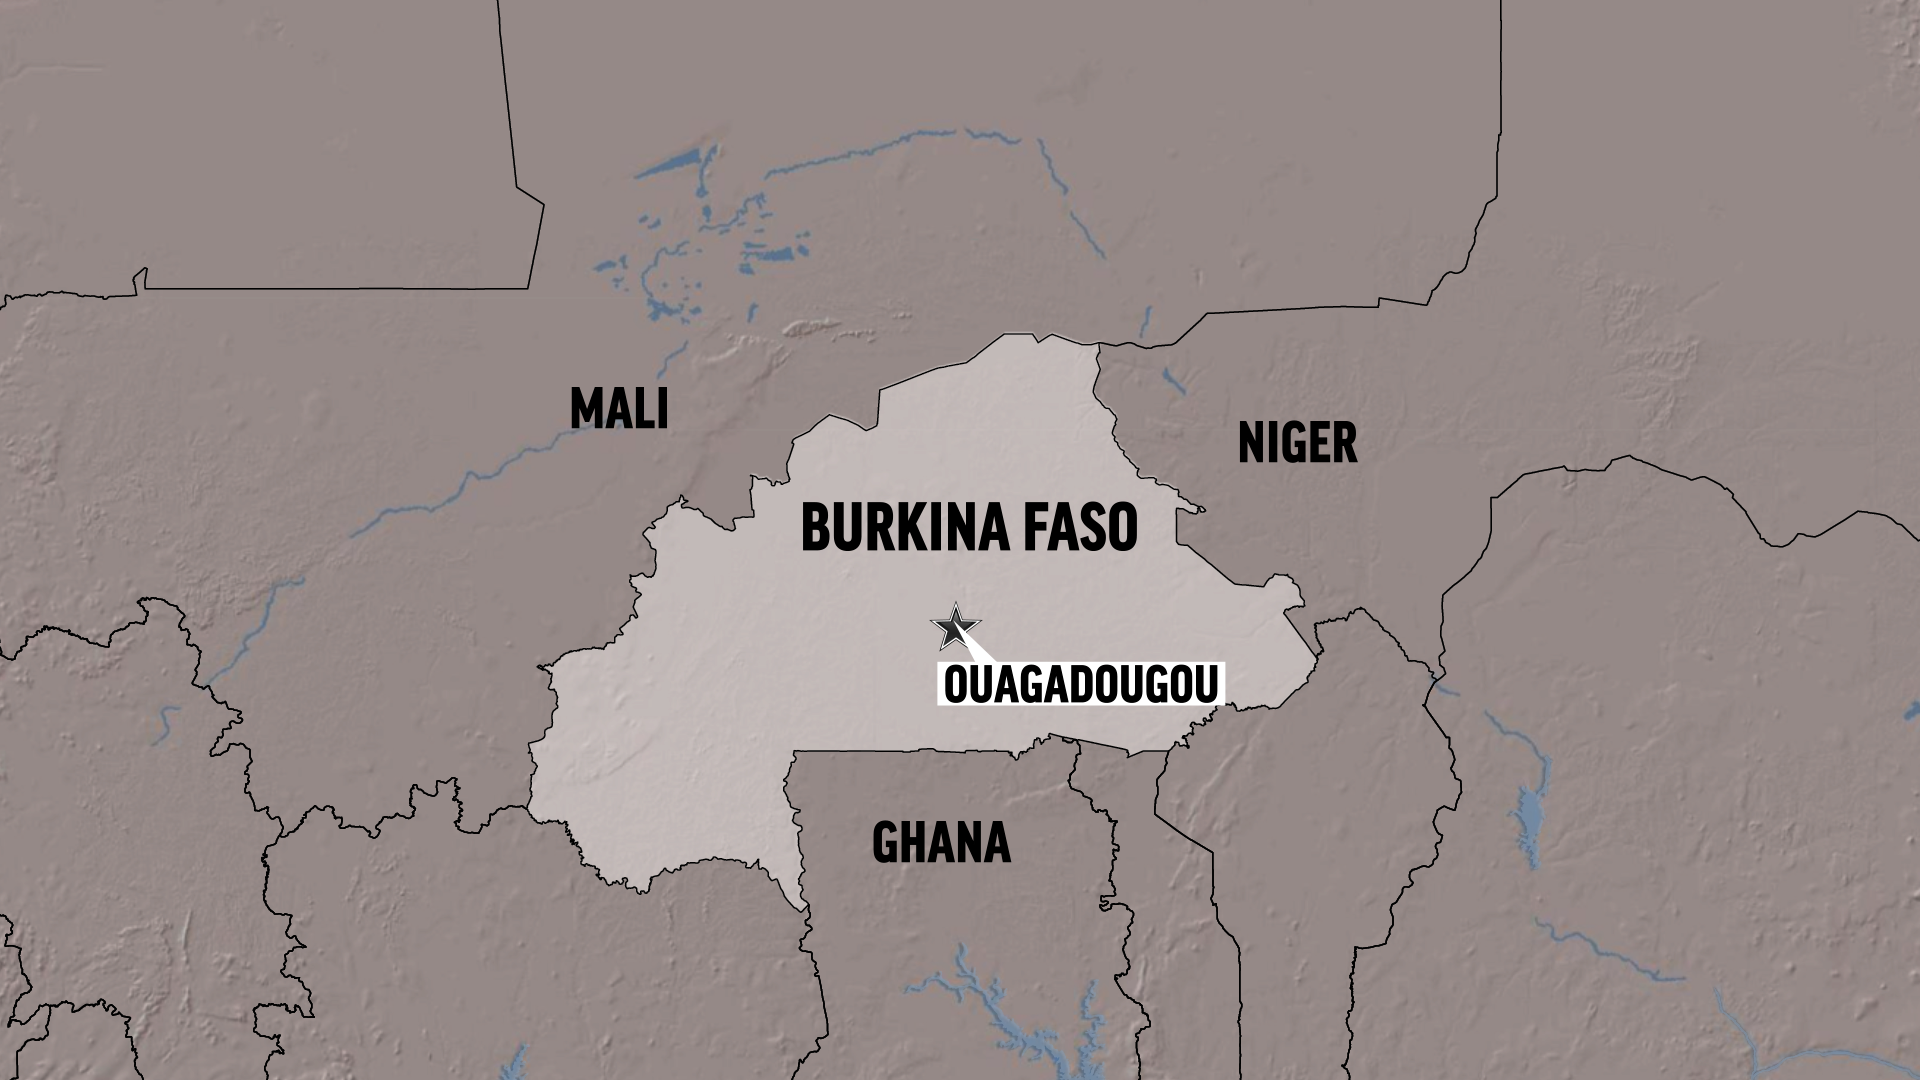 18 killed in Burkina Faso terror attack